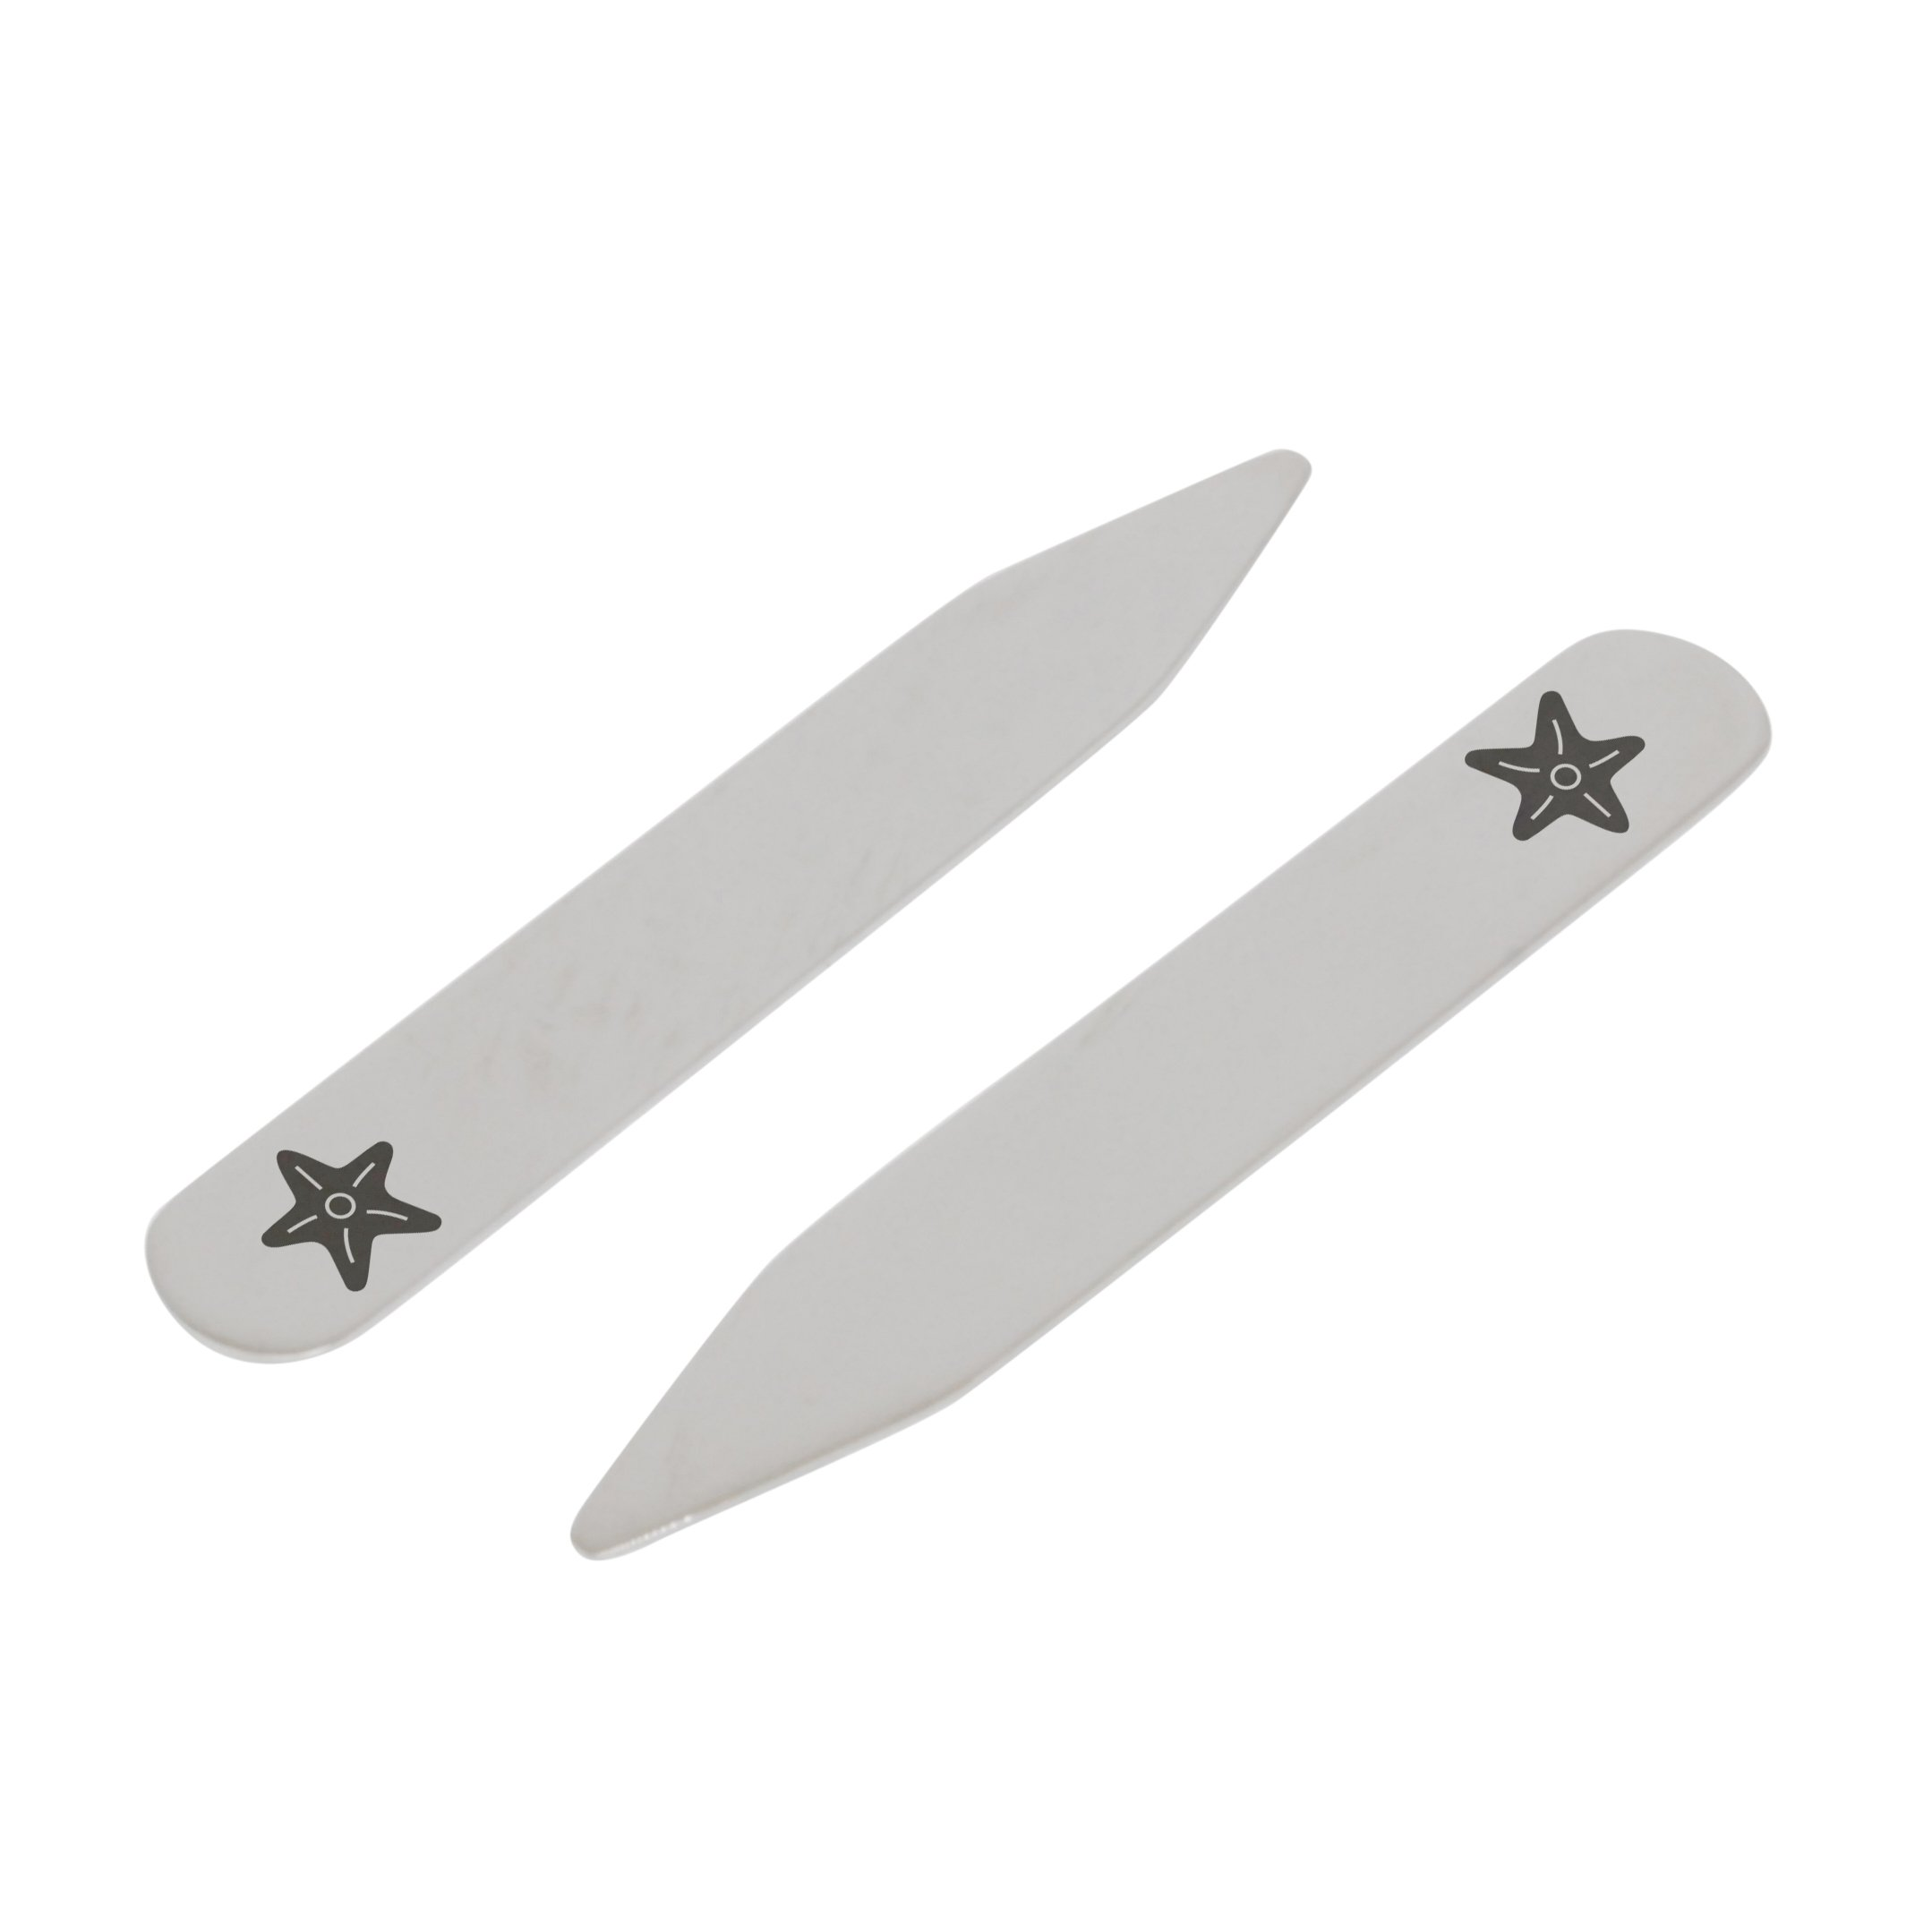 MODERN GOODS SHOP Stainless Steel Collar Stays With Laser Engraved Starfish Design - 2.5 Inch Metal Collar Stiffeners - Made In USA